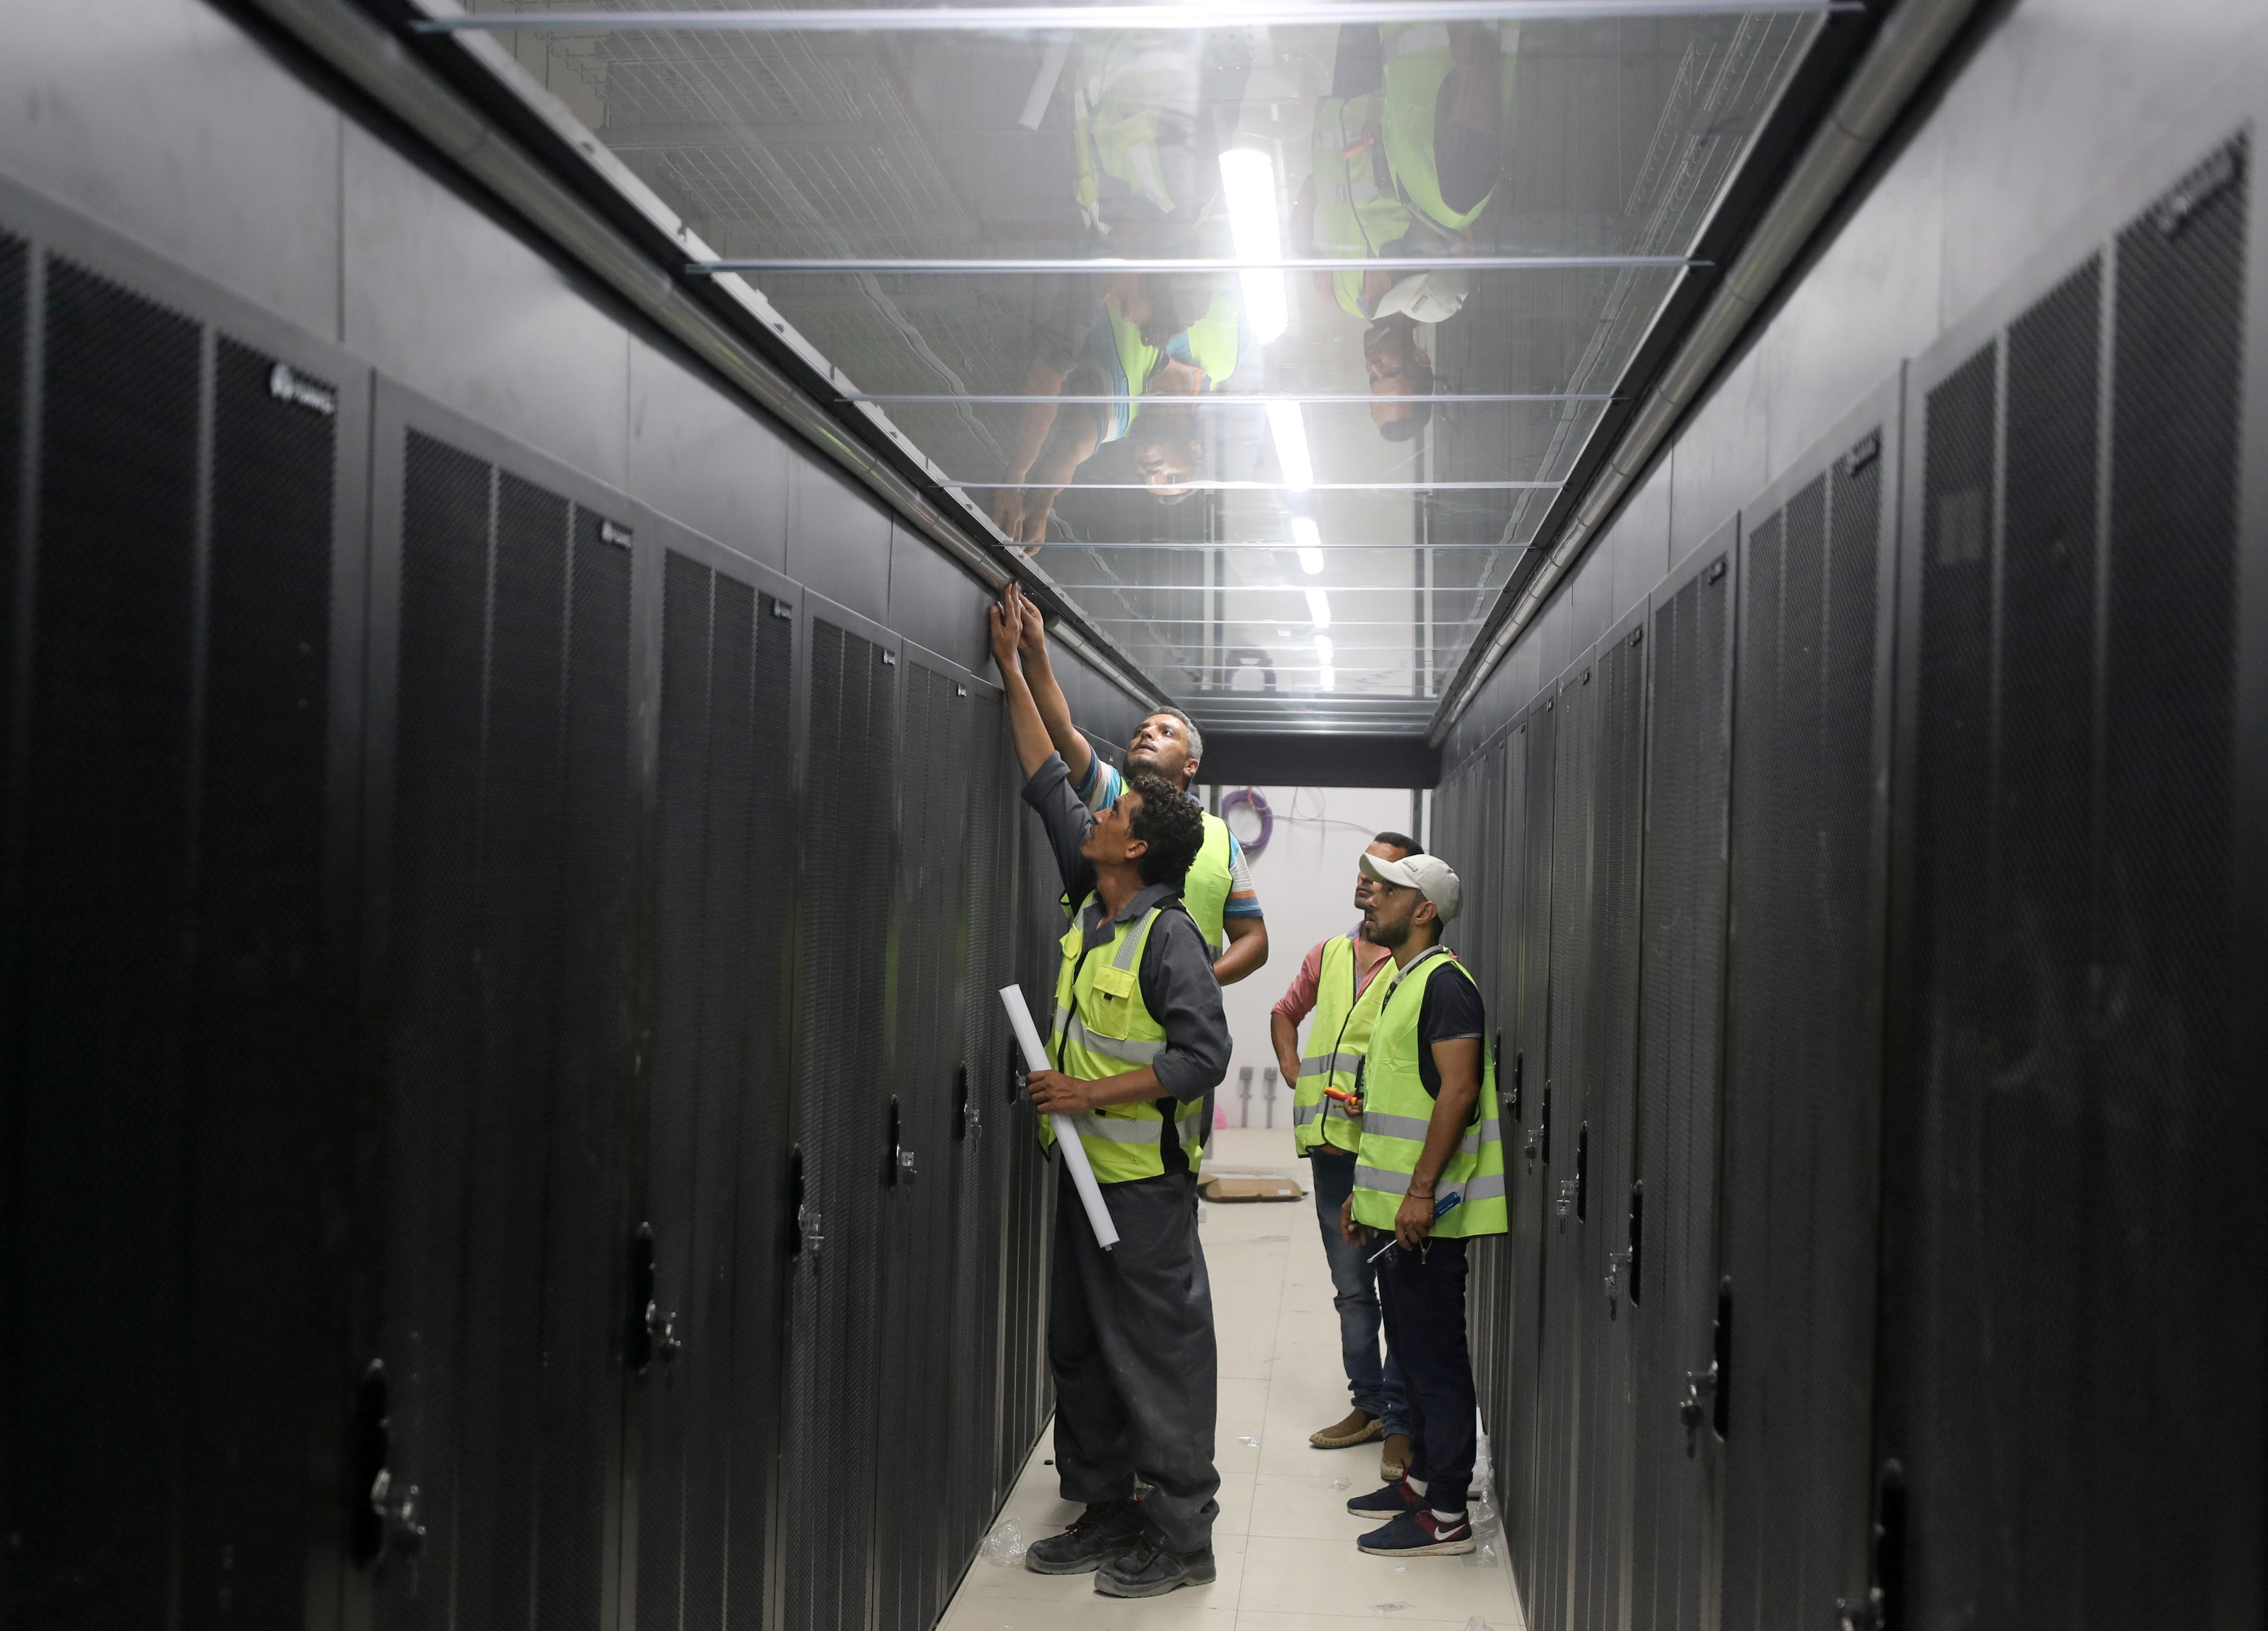 Engineers install server cabinets at an under construction data center in the New Administrative Capital (NAC) east of Cairo, Egypt July 5, 2021. Picture taken July 5, 2021. REUTERS/Mohamed Abd El Ghany